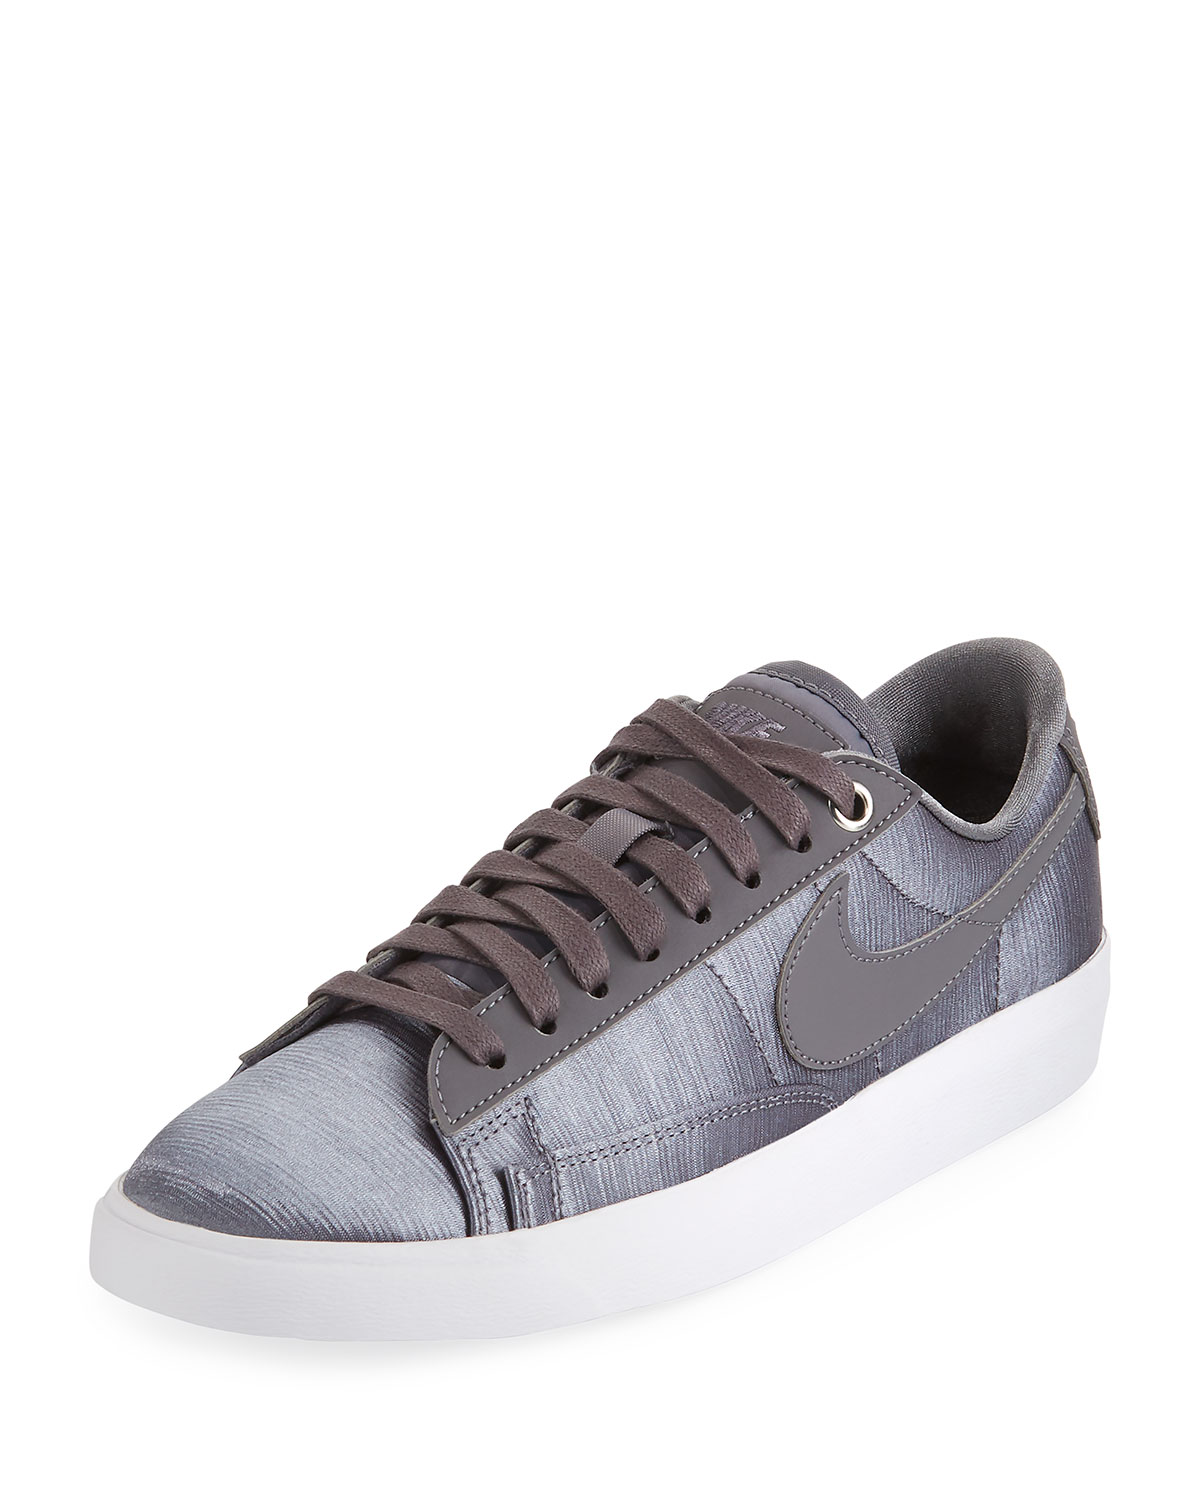 WOMEN'S BLAZER EMBOSSED SATIN & LEATHER LACE UP SNEAKERS